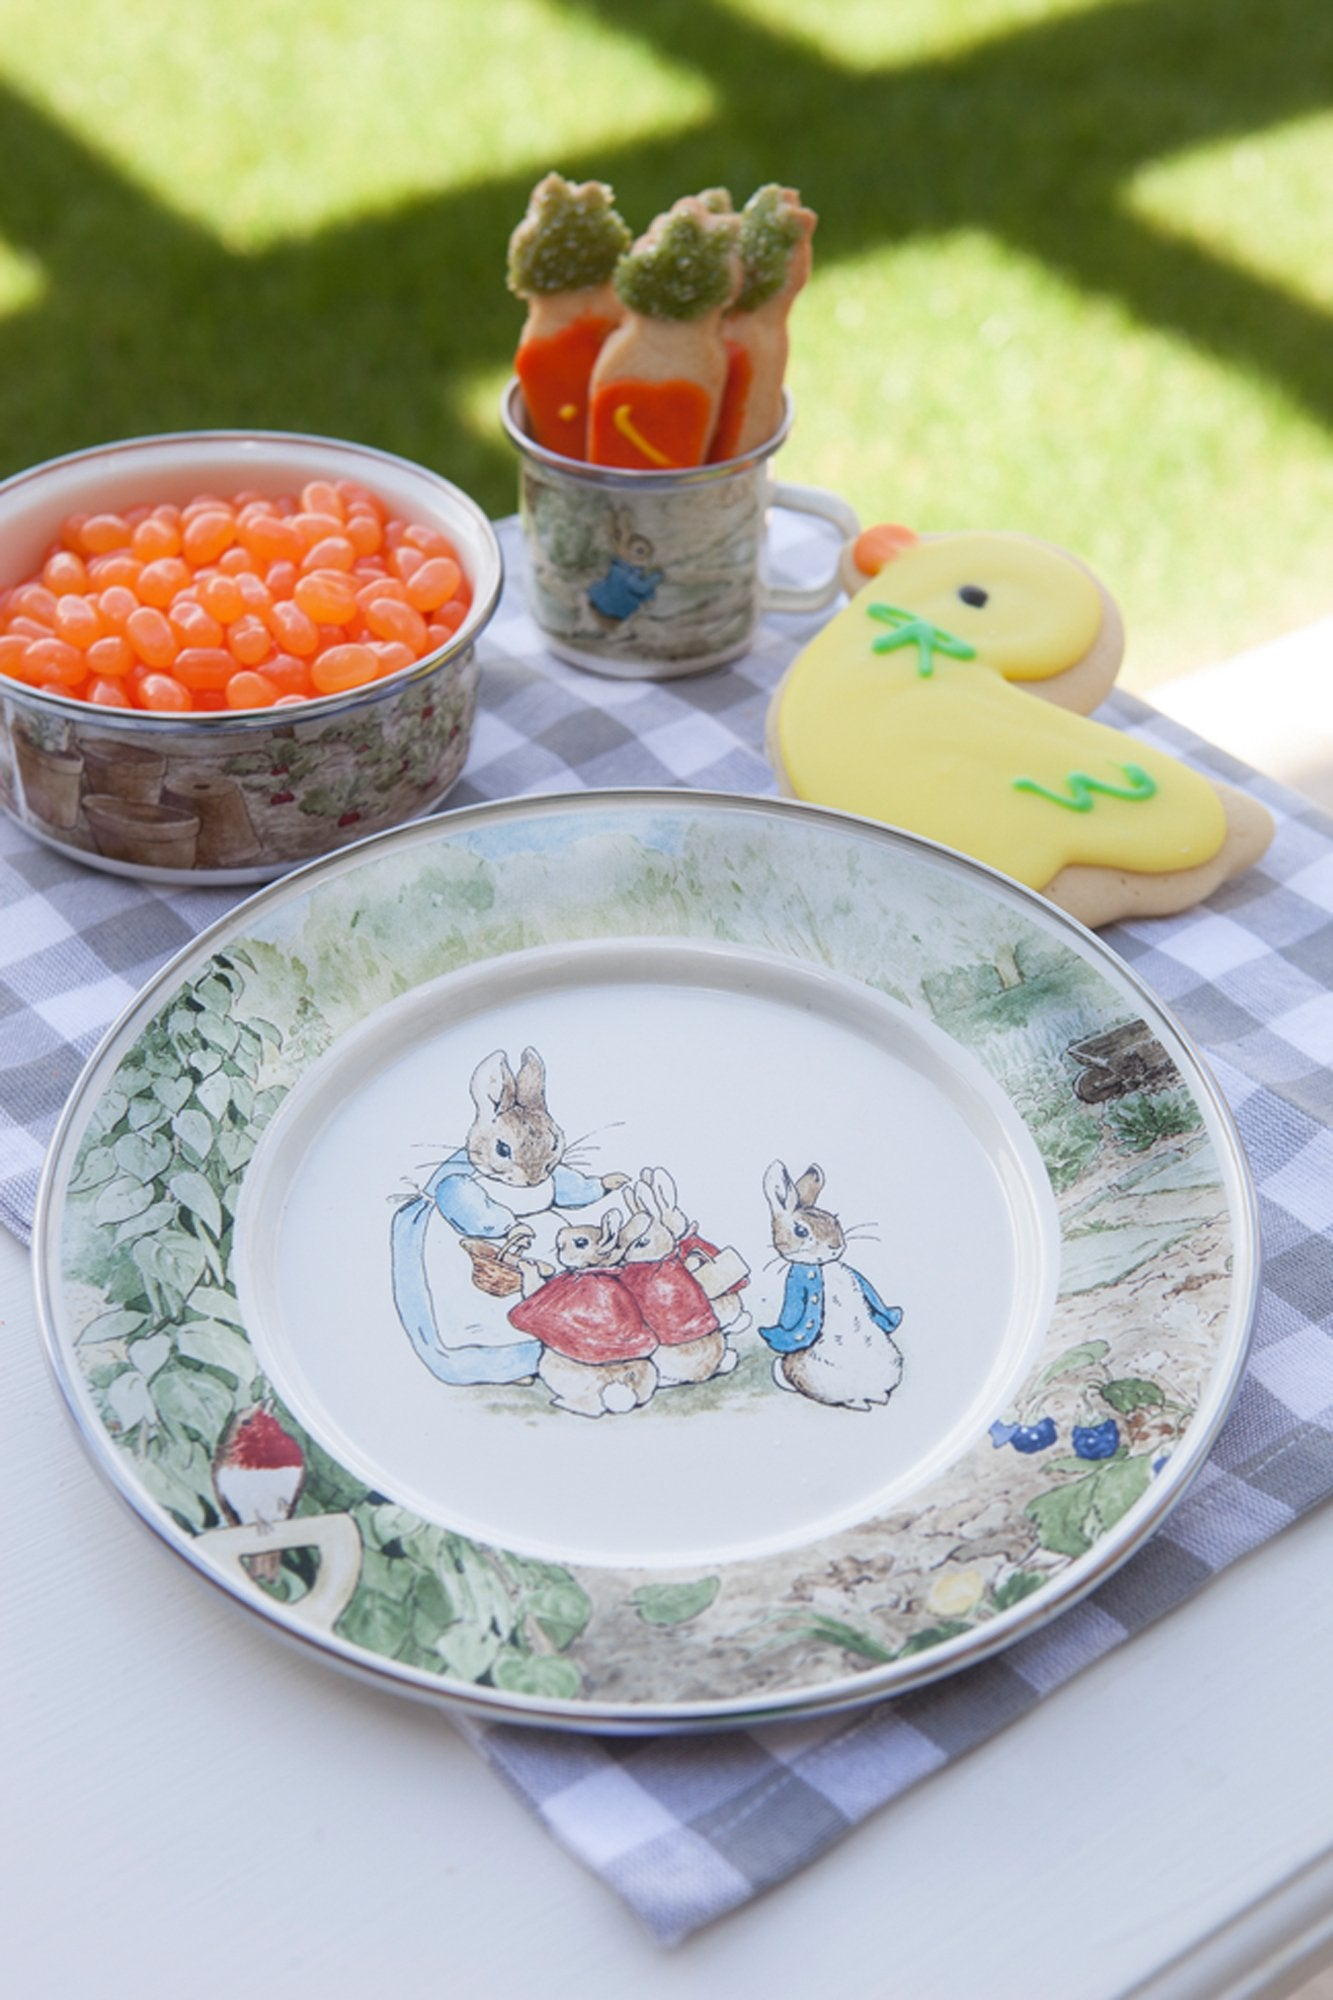 BP16 - Peter Rabbit Toddler Plate Image 2